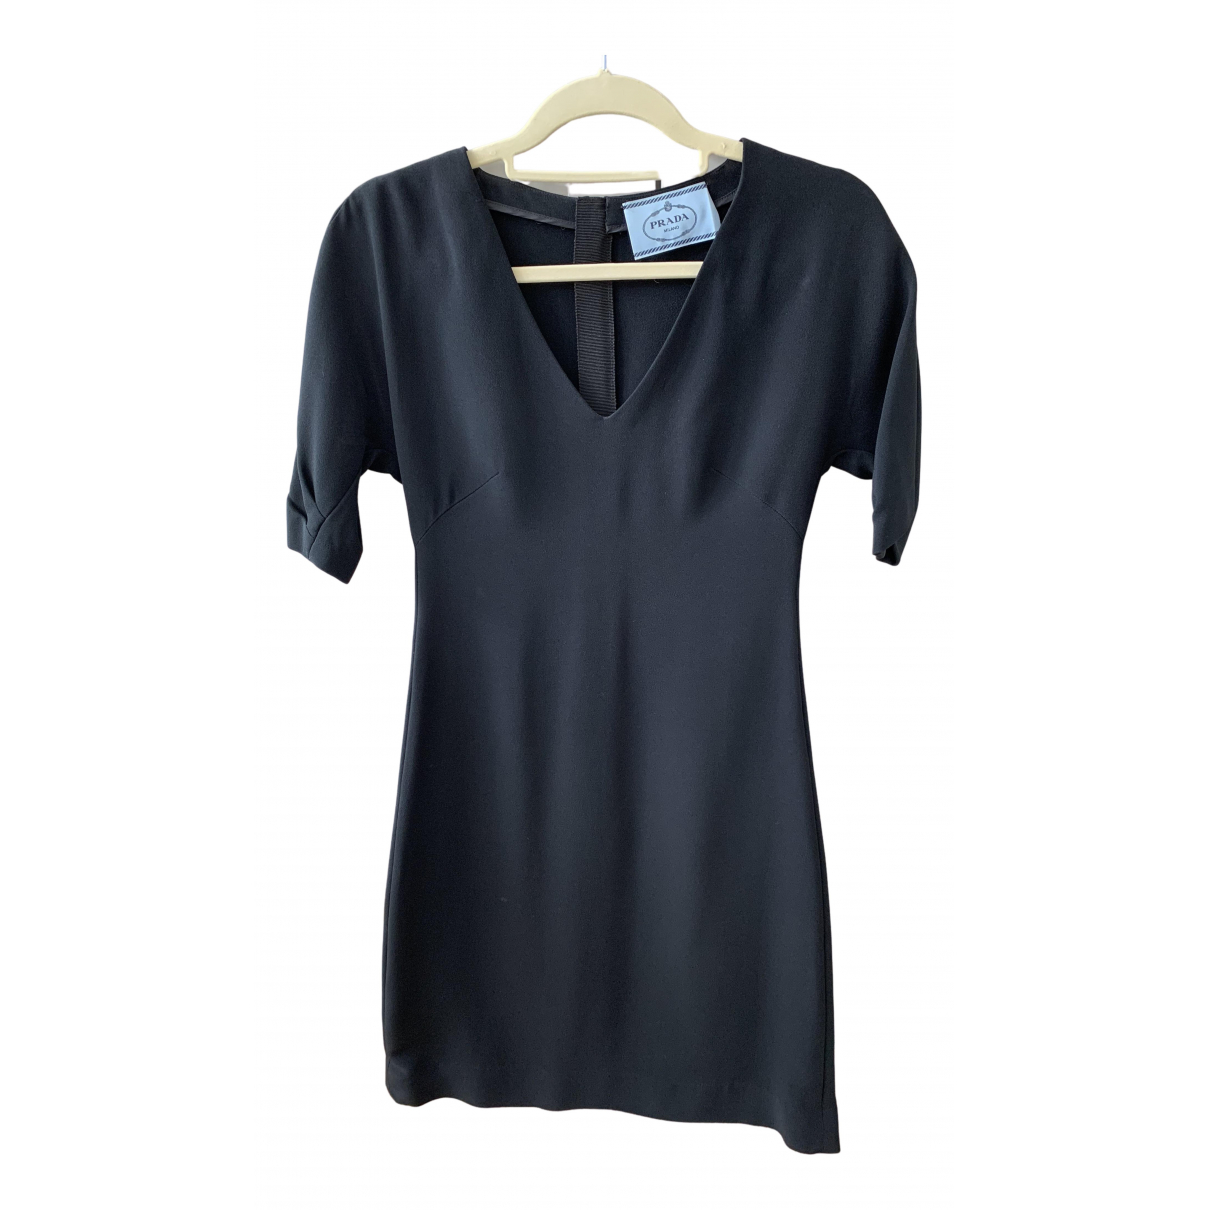 Prada N Black dress for Women 40 IT